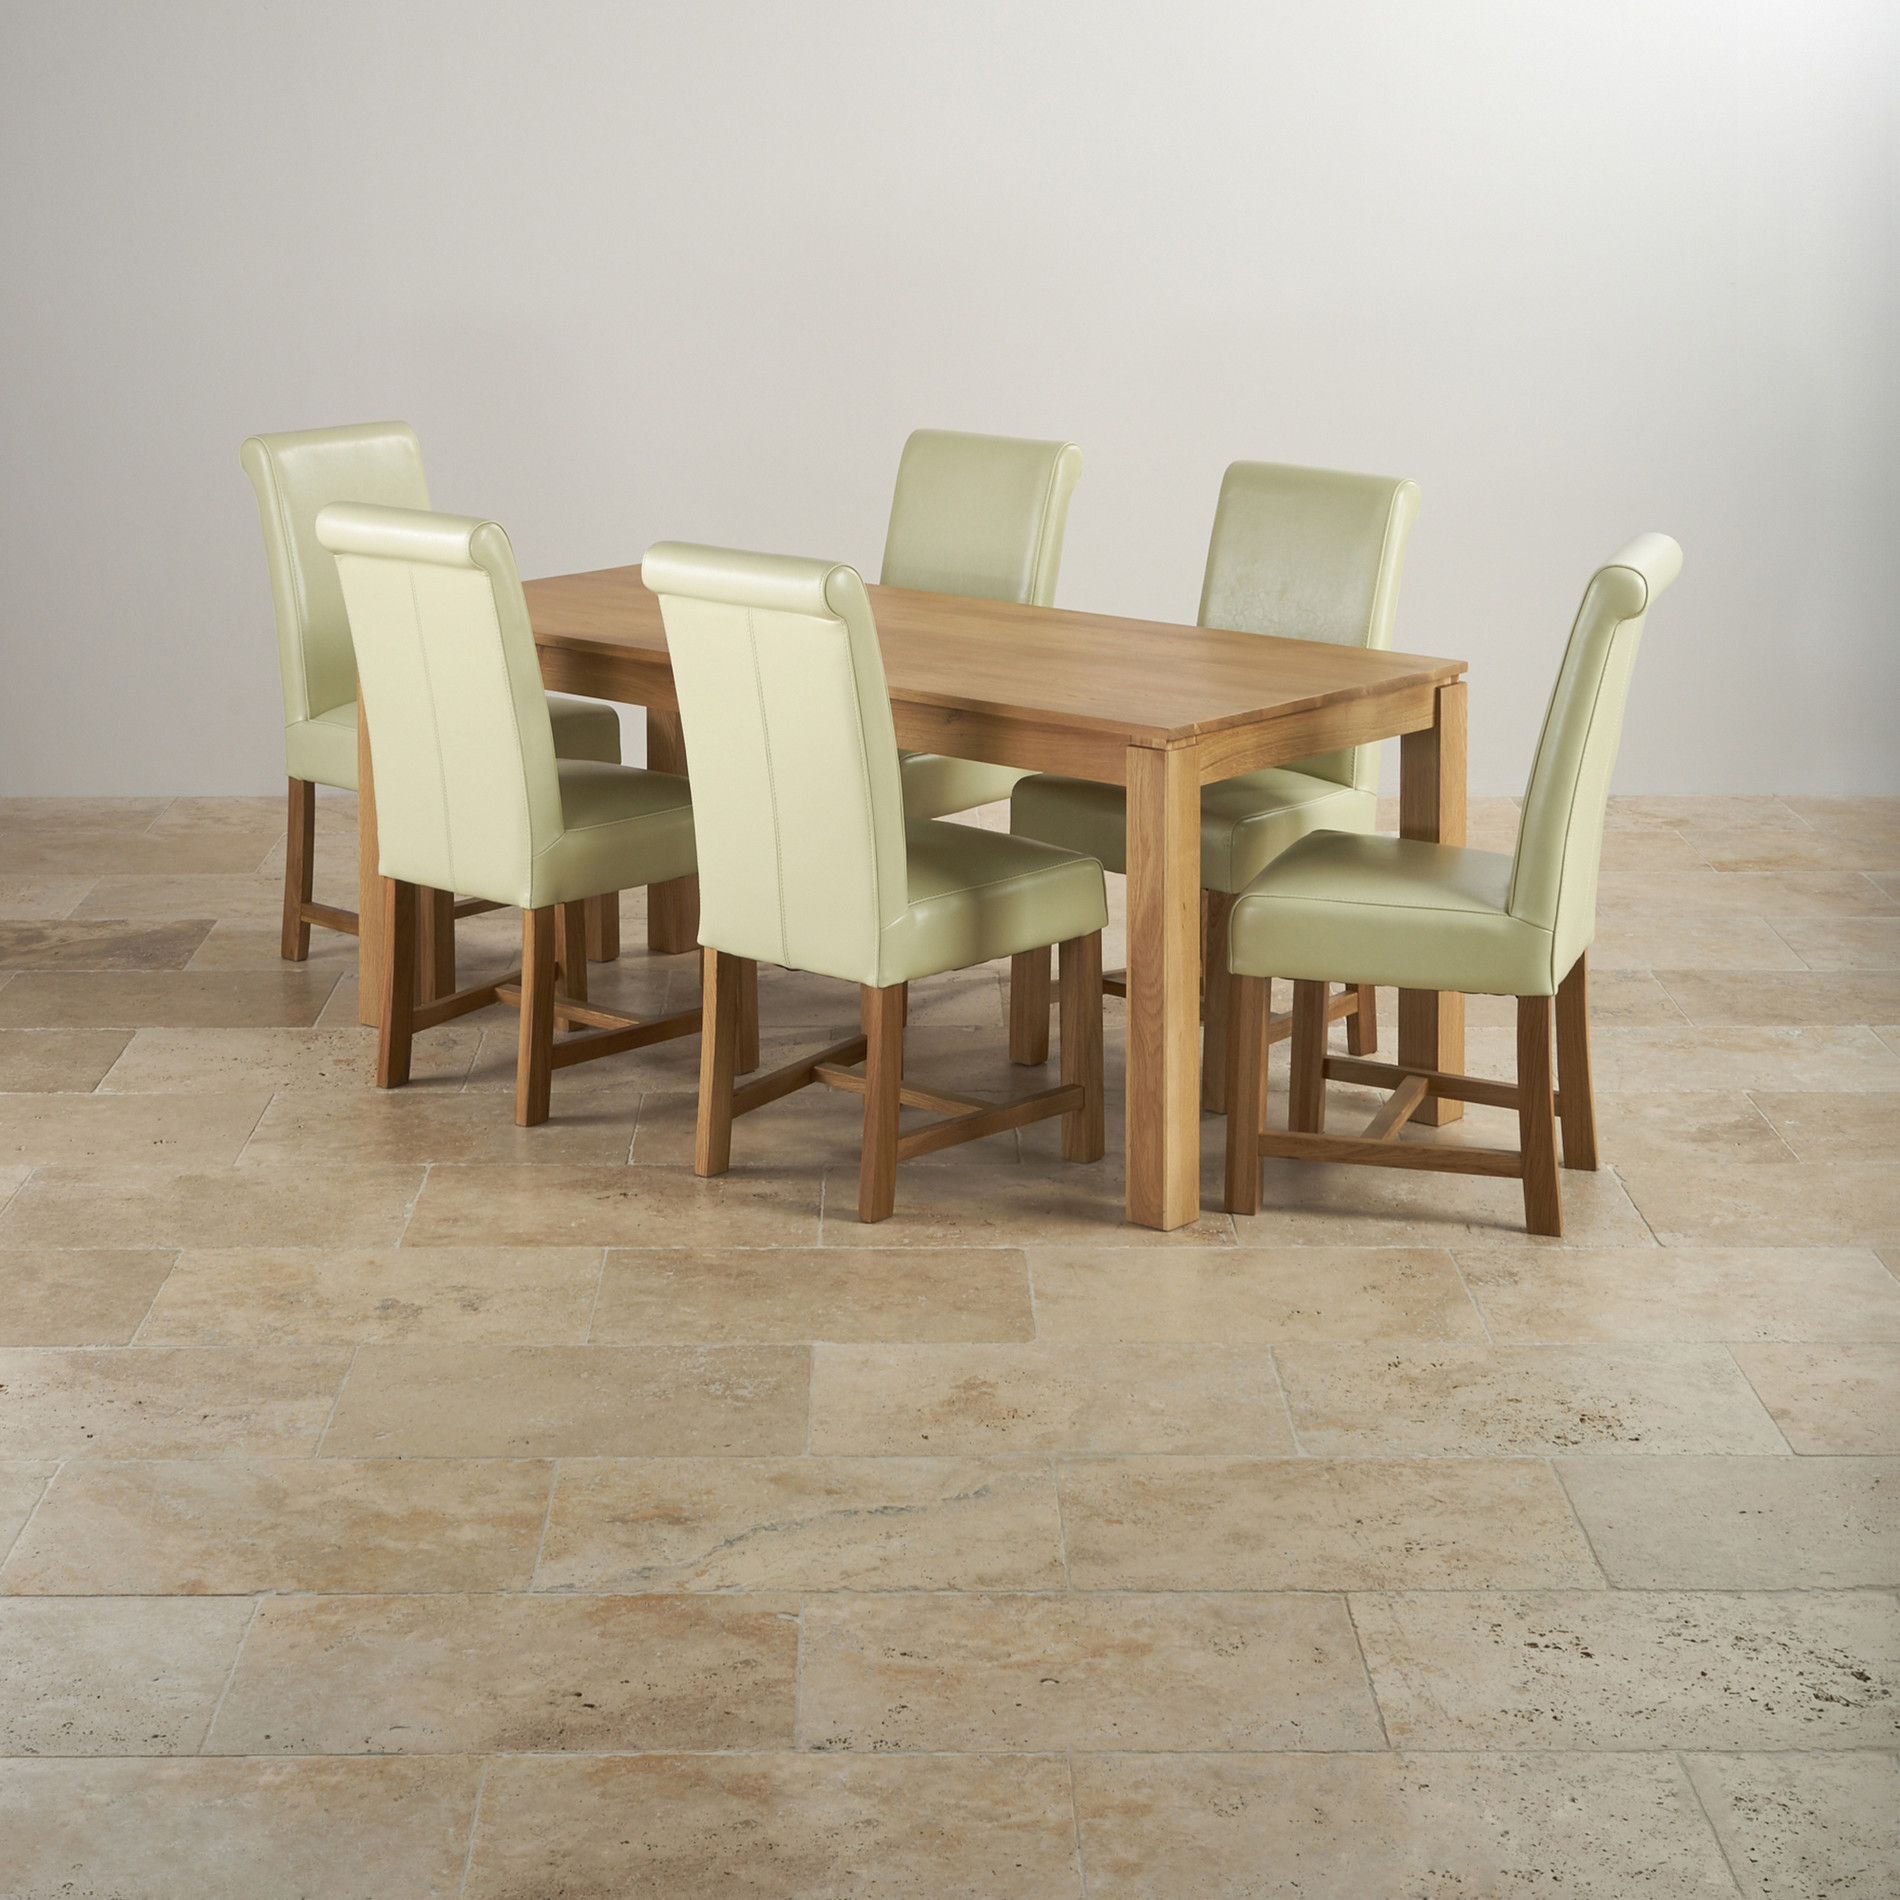 6 Ft Square Dining Table Galway Dining Set In Natural Oak 6ft Table 43 6 Leather